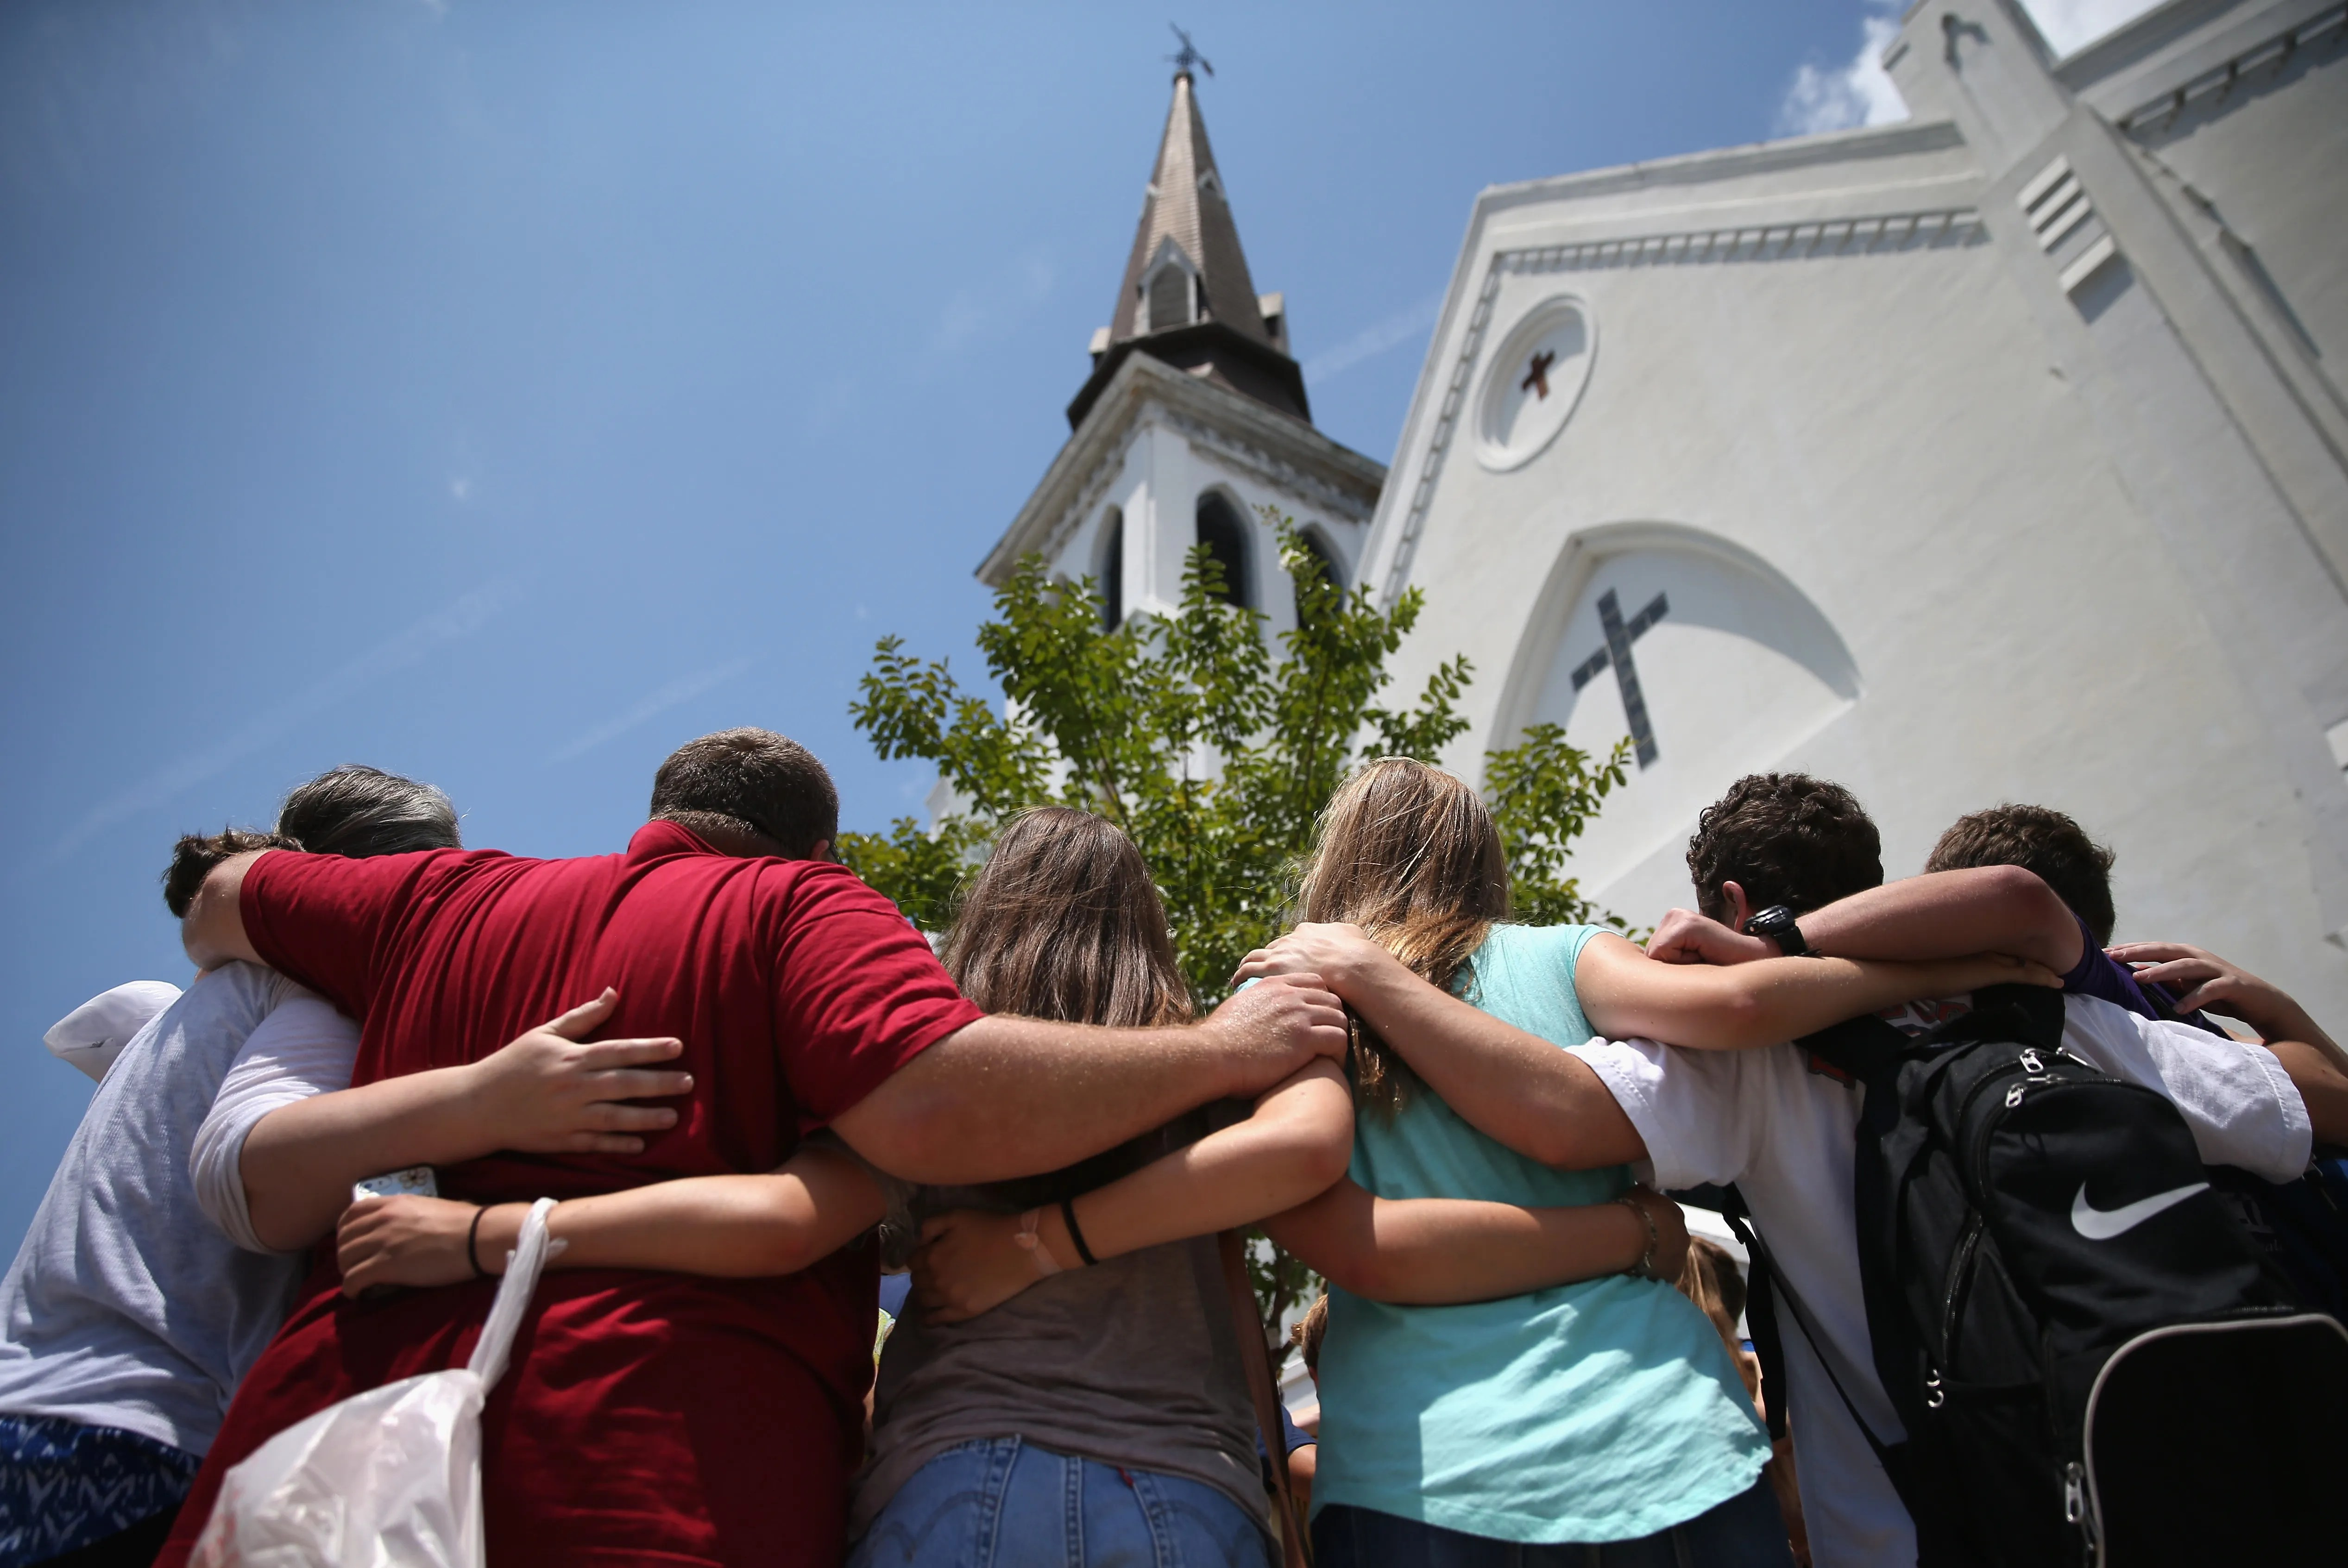 """A church youth group from Douthan, Ala., prays in front of the Emanuel AME Church in July 2015, a month after a mass shooting in Charleston, S.C. Visitors gathered at a makeshift shrine in front of the church in a show of faith and solidarity with """"Mother Emanuel,"""" as the church is known. Nine people were killed by white supremacist Dylann Roof, who was sentenced to death for the murders."""